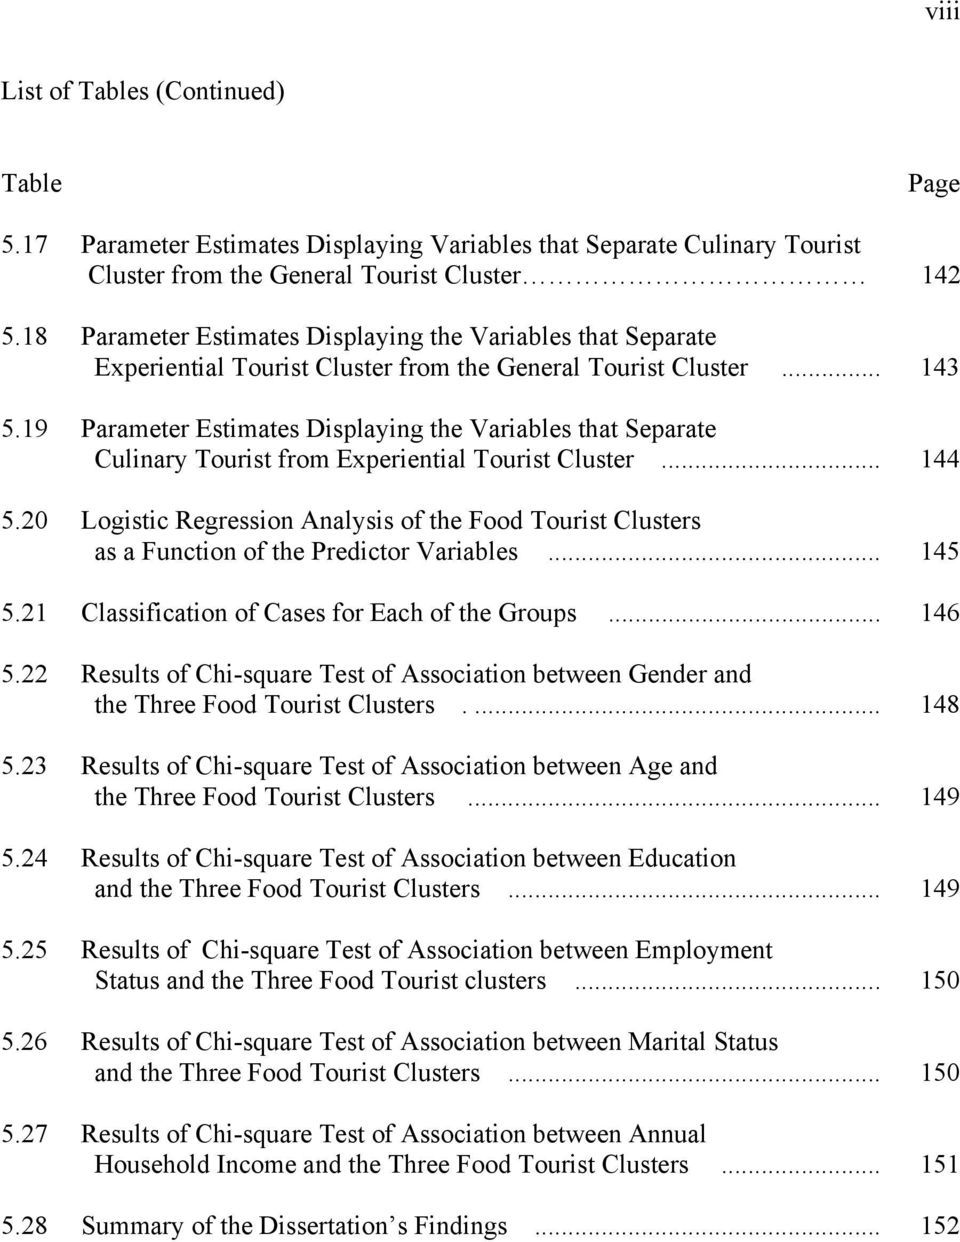 19 Parameter Estimates Displaying the Variables that Separate Culinary Tourist from Experiential Tourist Cluster... 144 5.